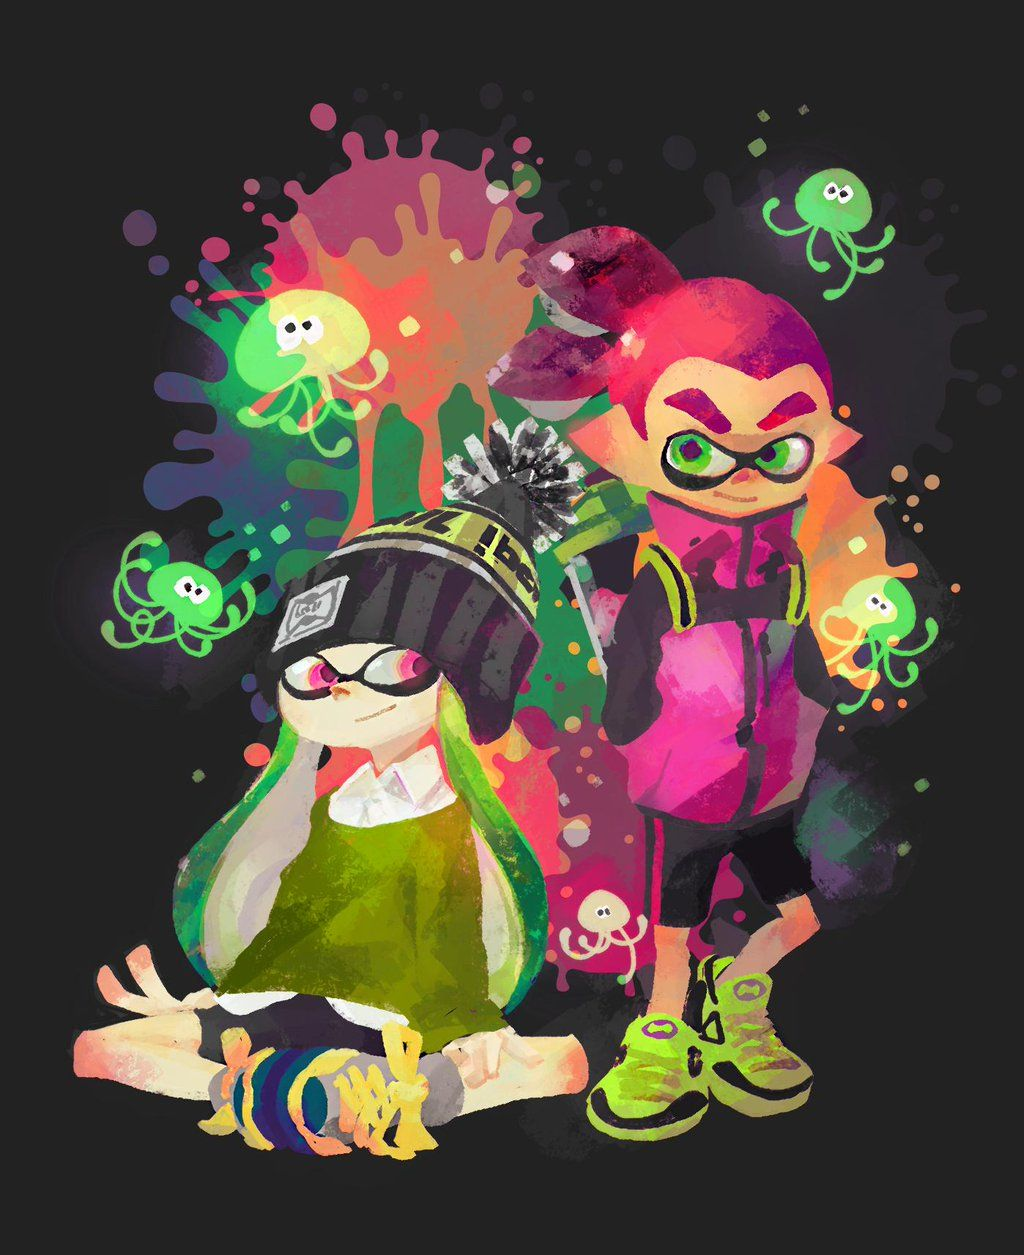 Media Tweets By Splatoonスプラトゥーン At Splatoonjp Twitter